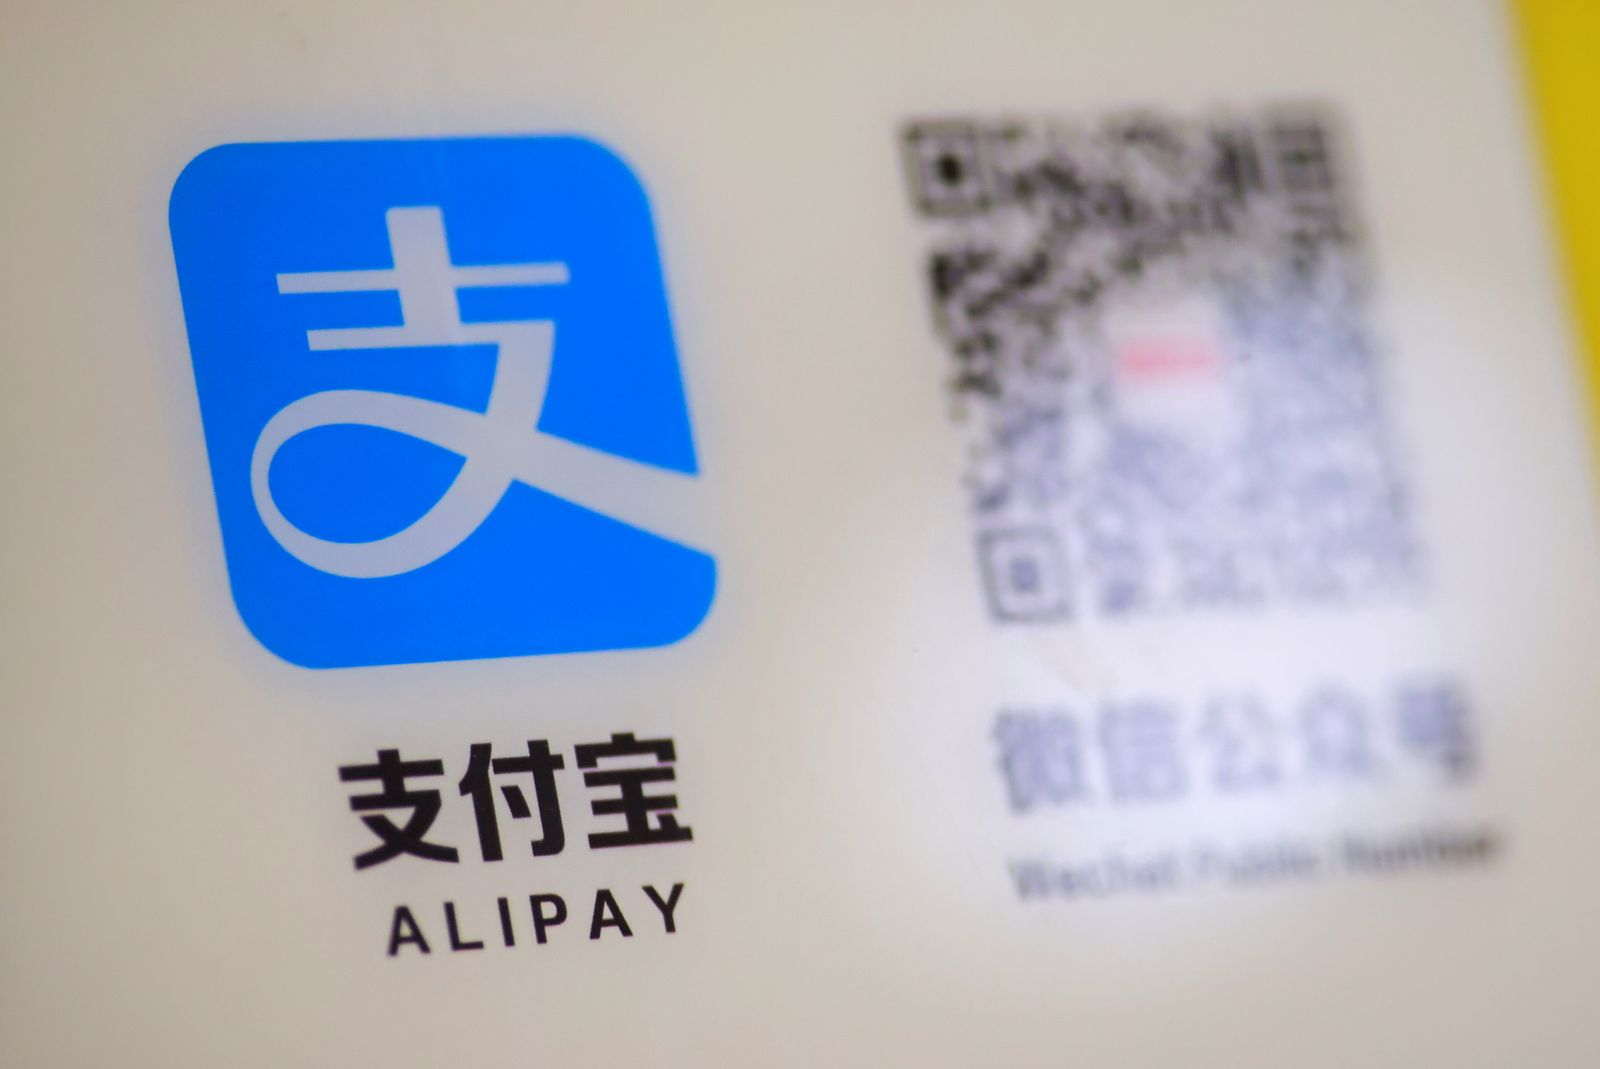 A logo of the electronic payment service Alipay that belongs to Ant Group Co Ltd is seen at a vending machine in Beijing